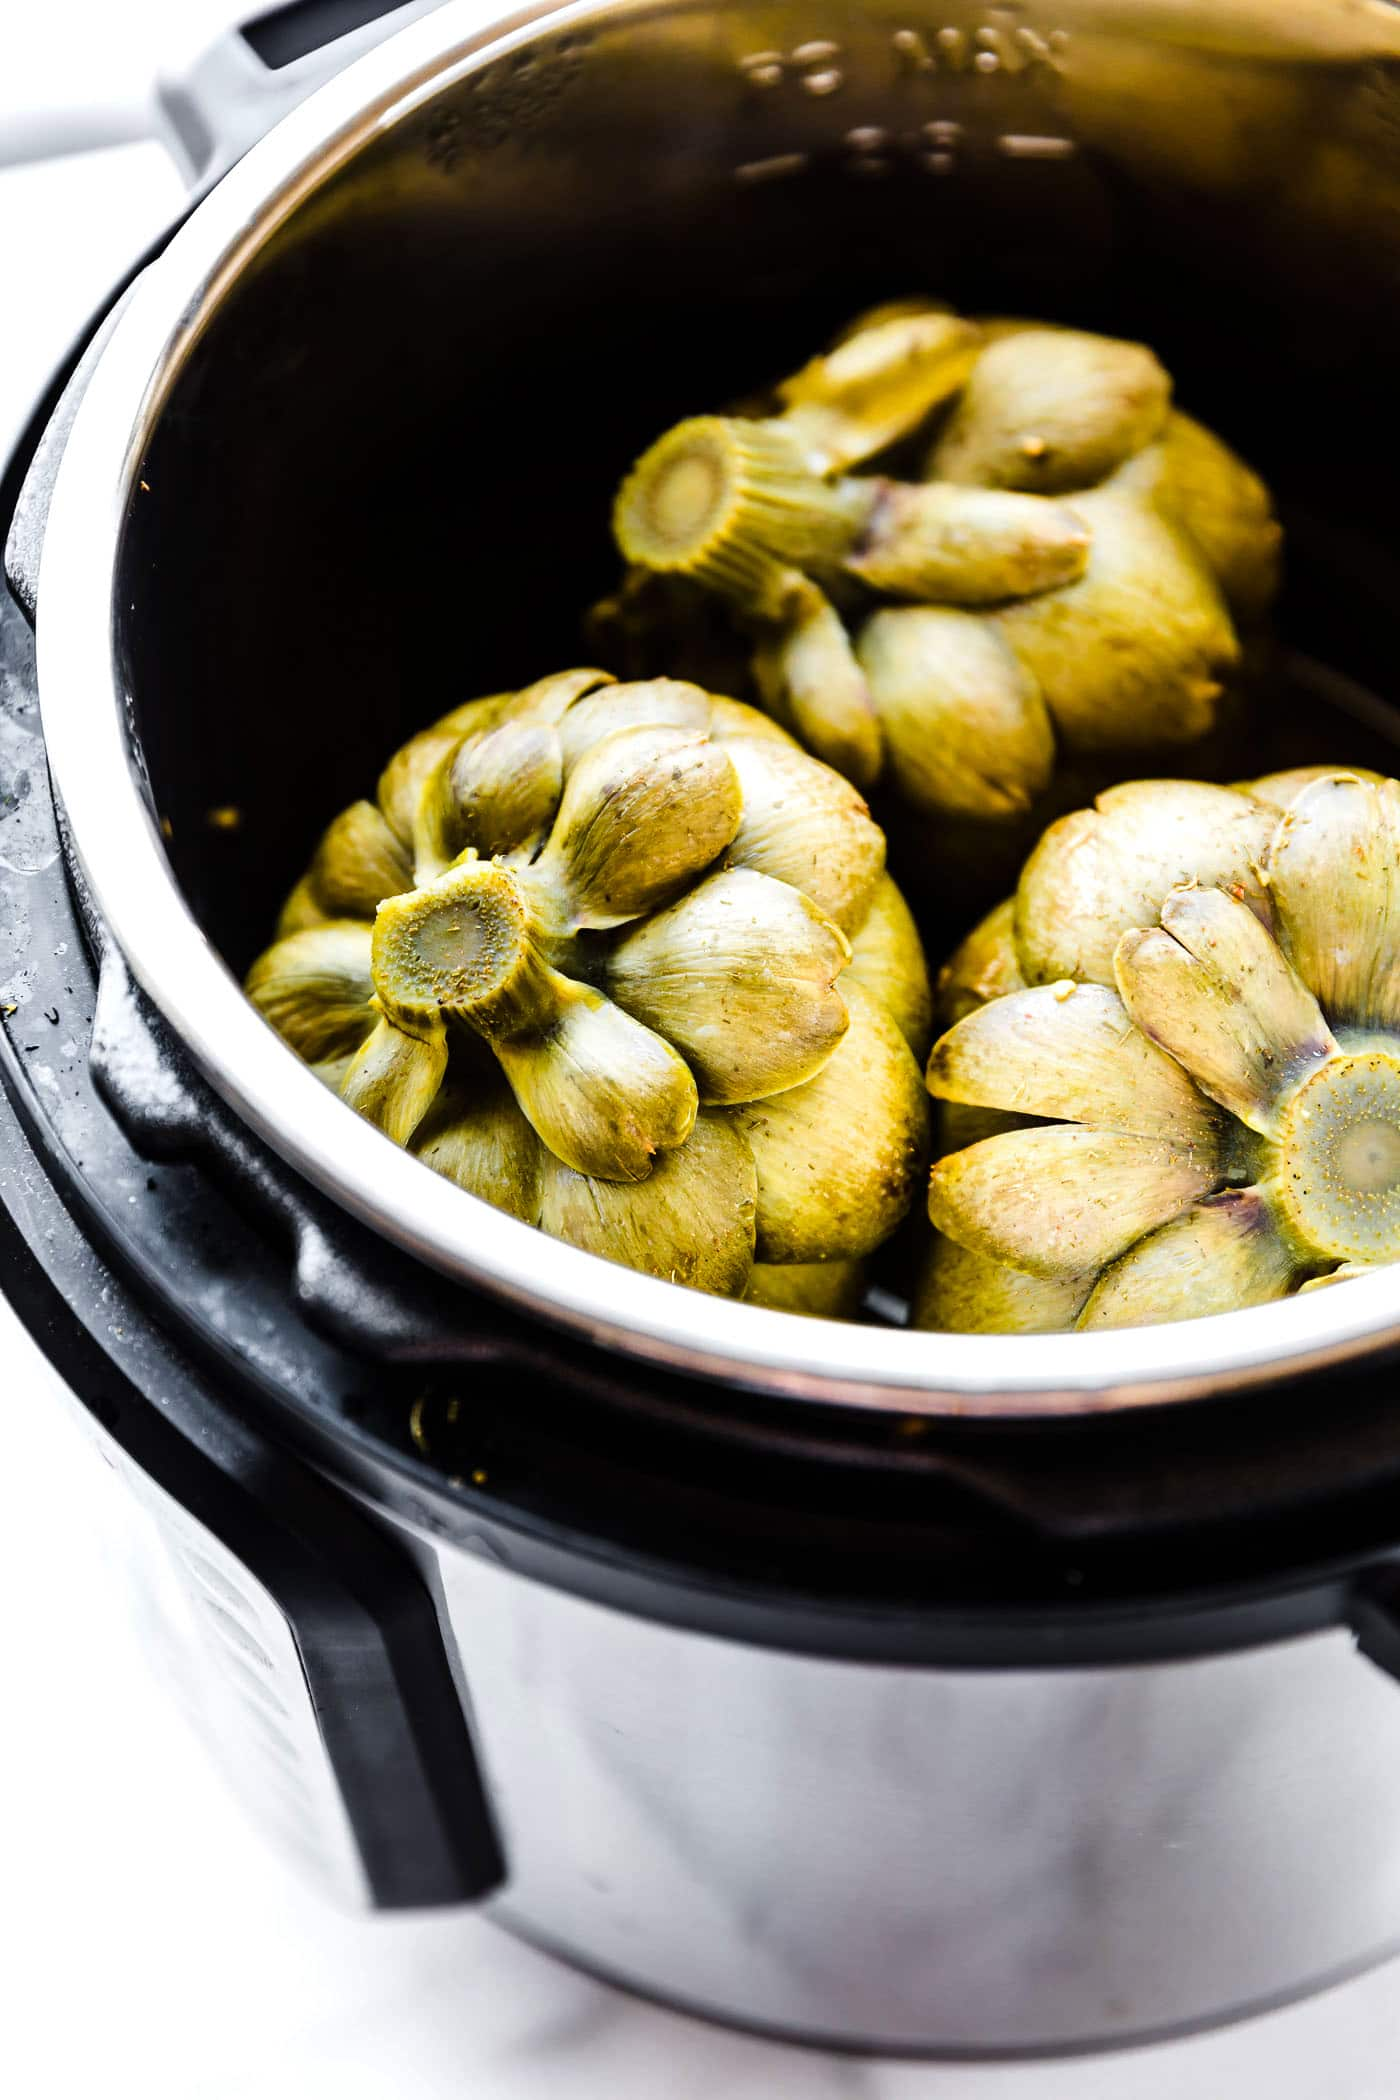 photo shows how to steam artichokes in an Instant Pot